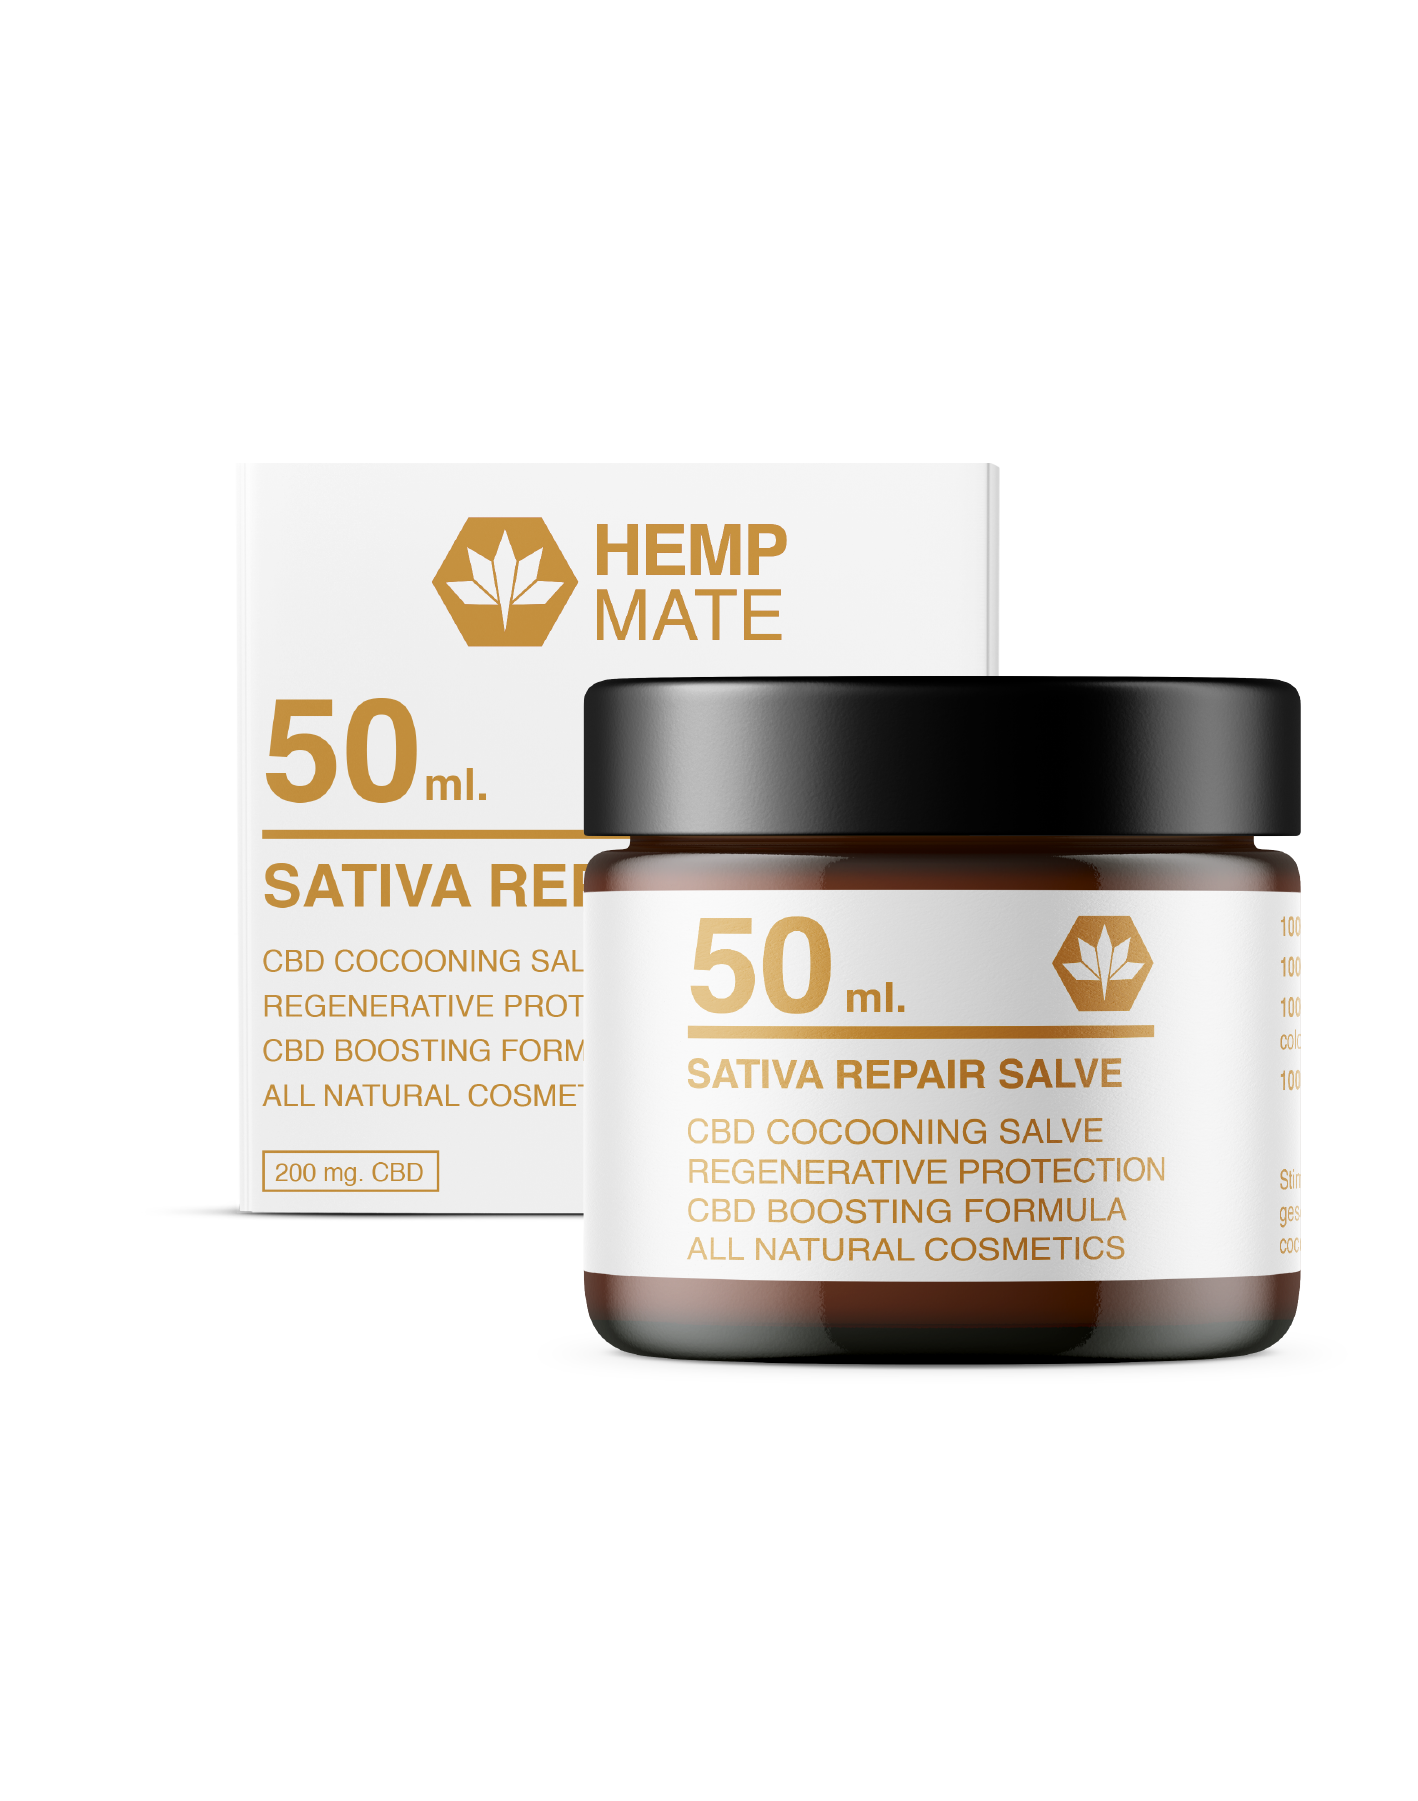 Sativa Repair Salve